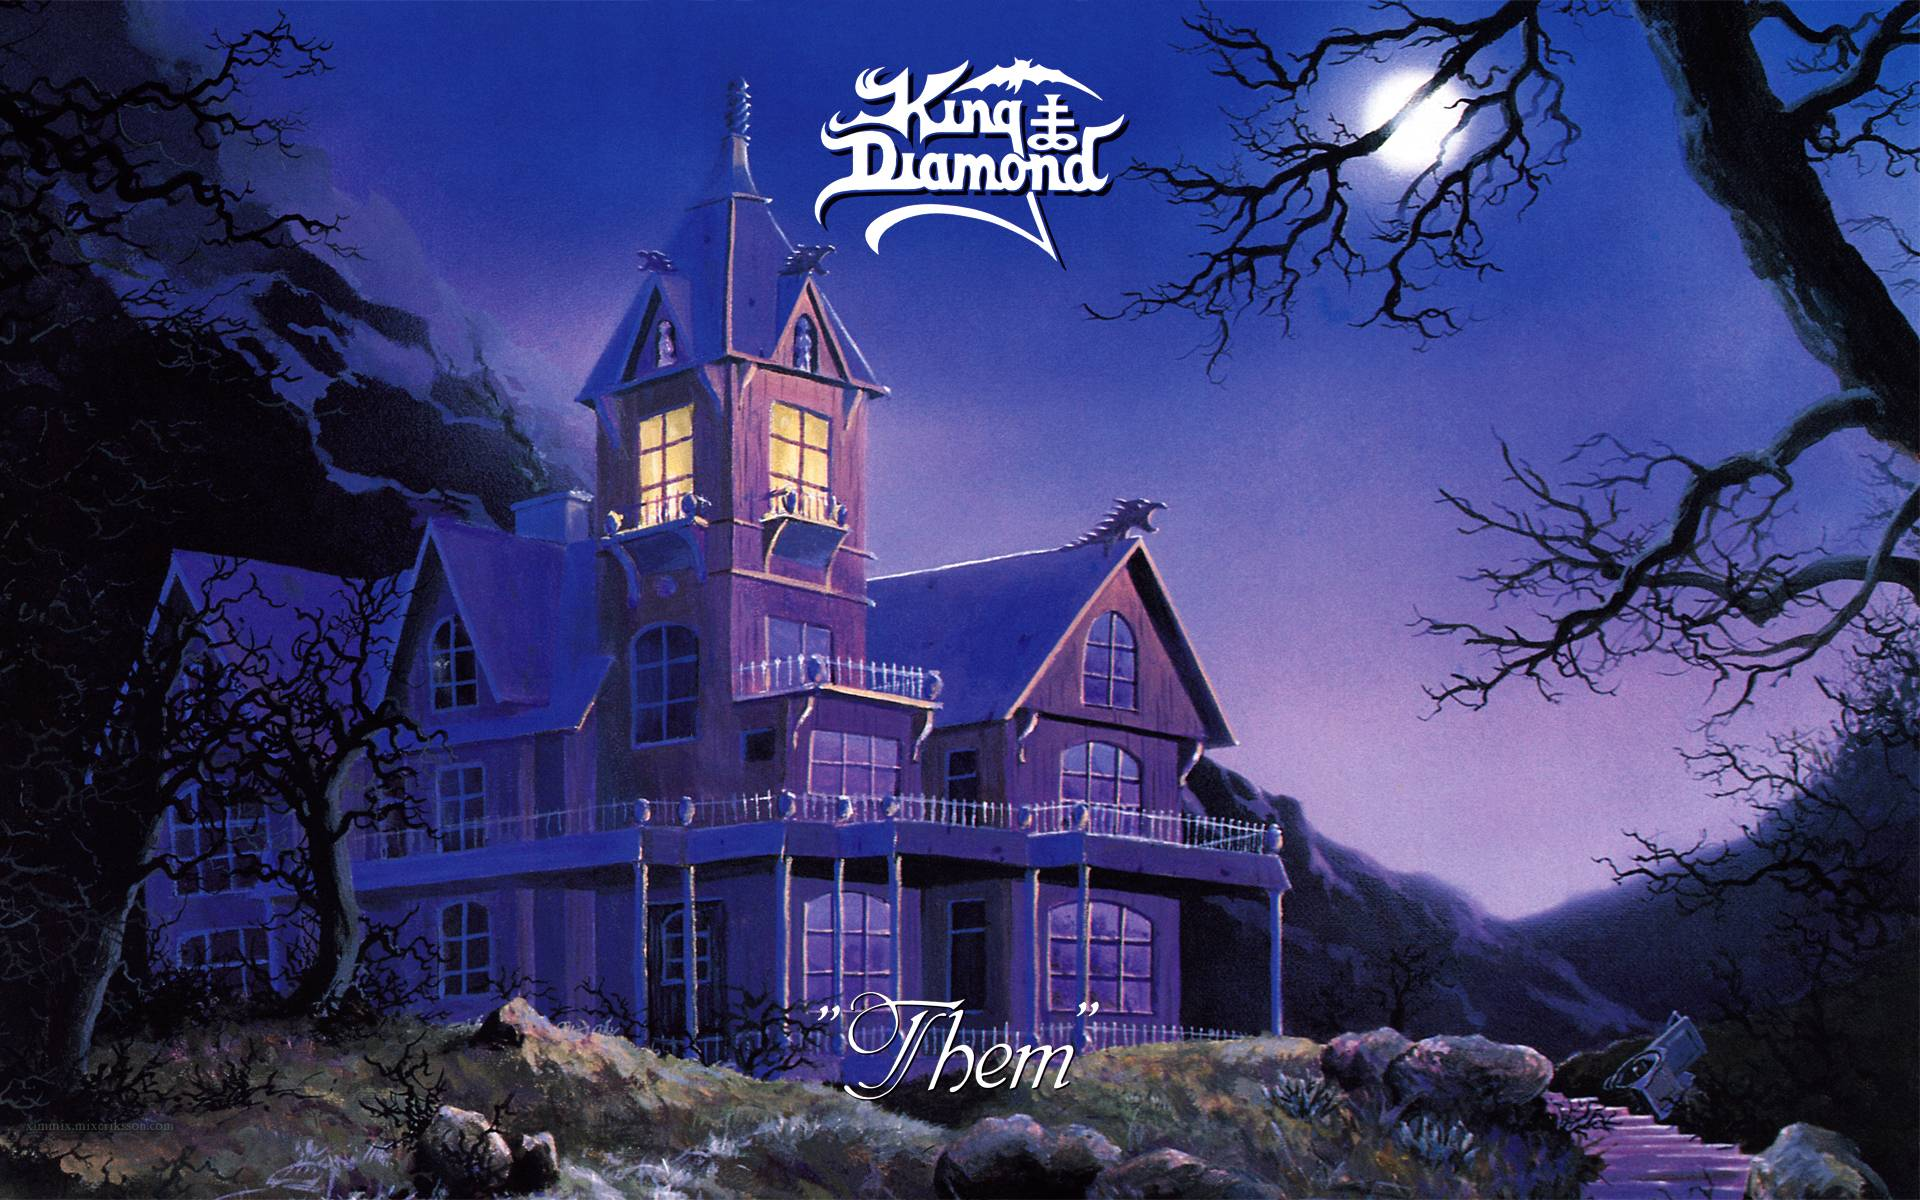 King diamond wallpapers wallpaper cave for Sa old house music